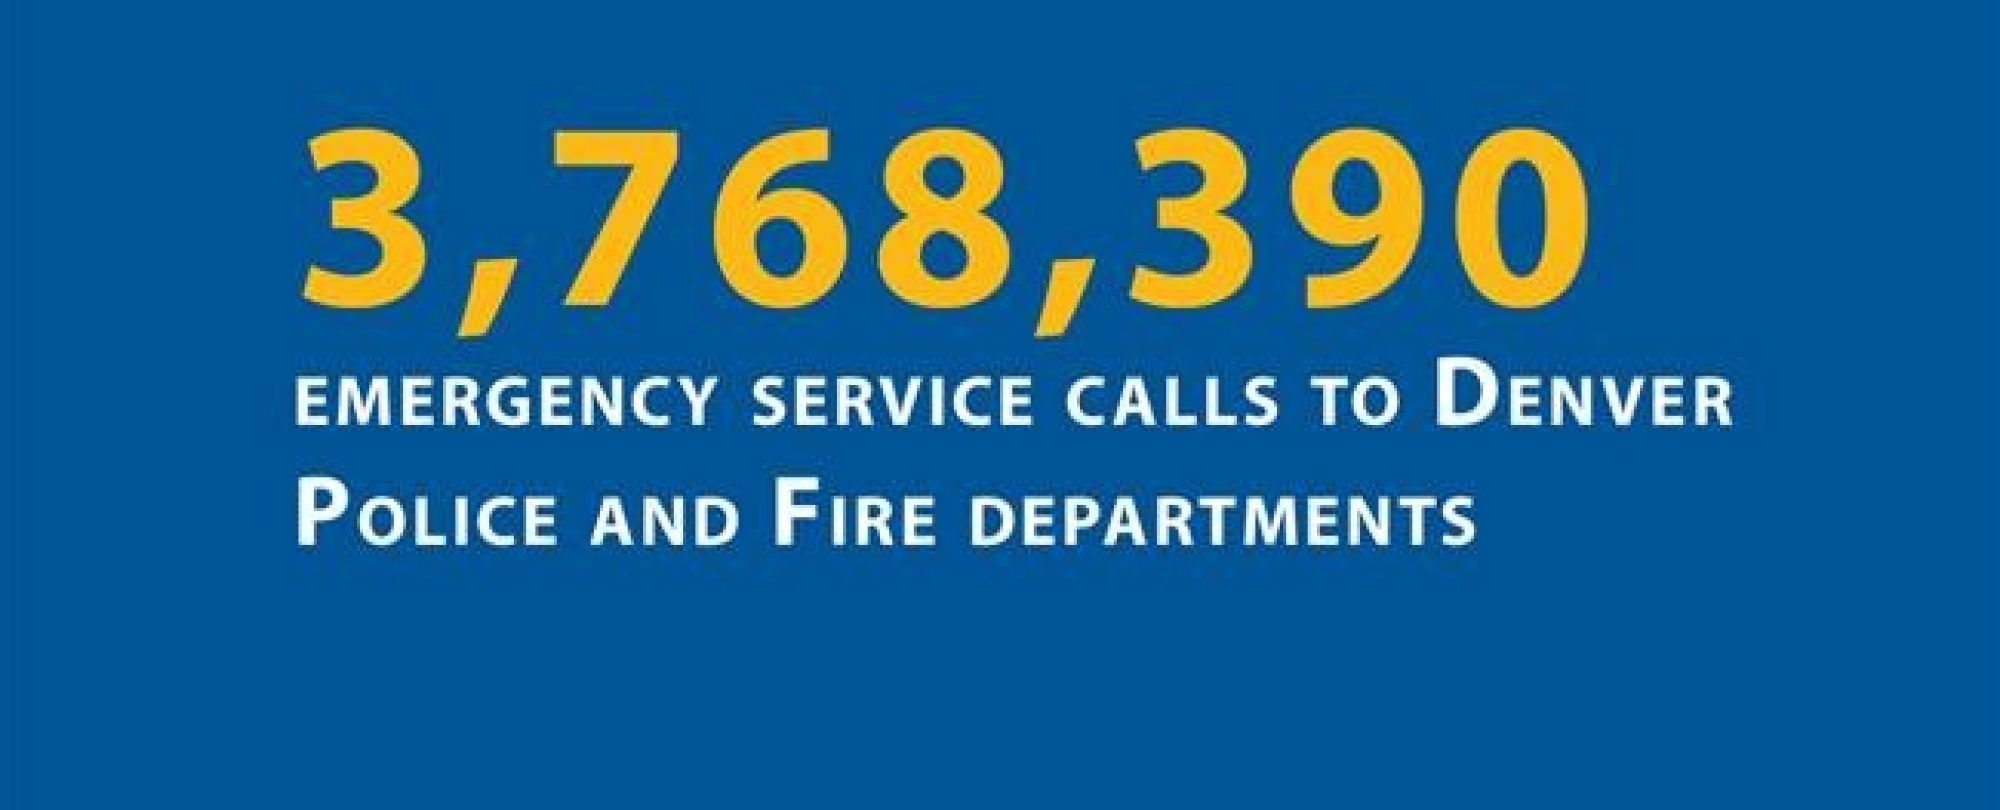 3,768,390 emergency service calls to Denver Police and Fire department